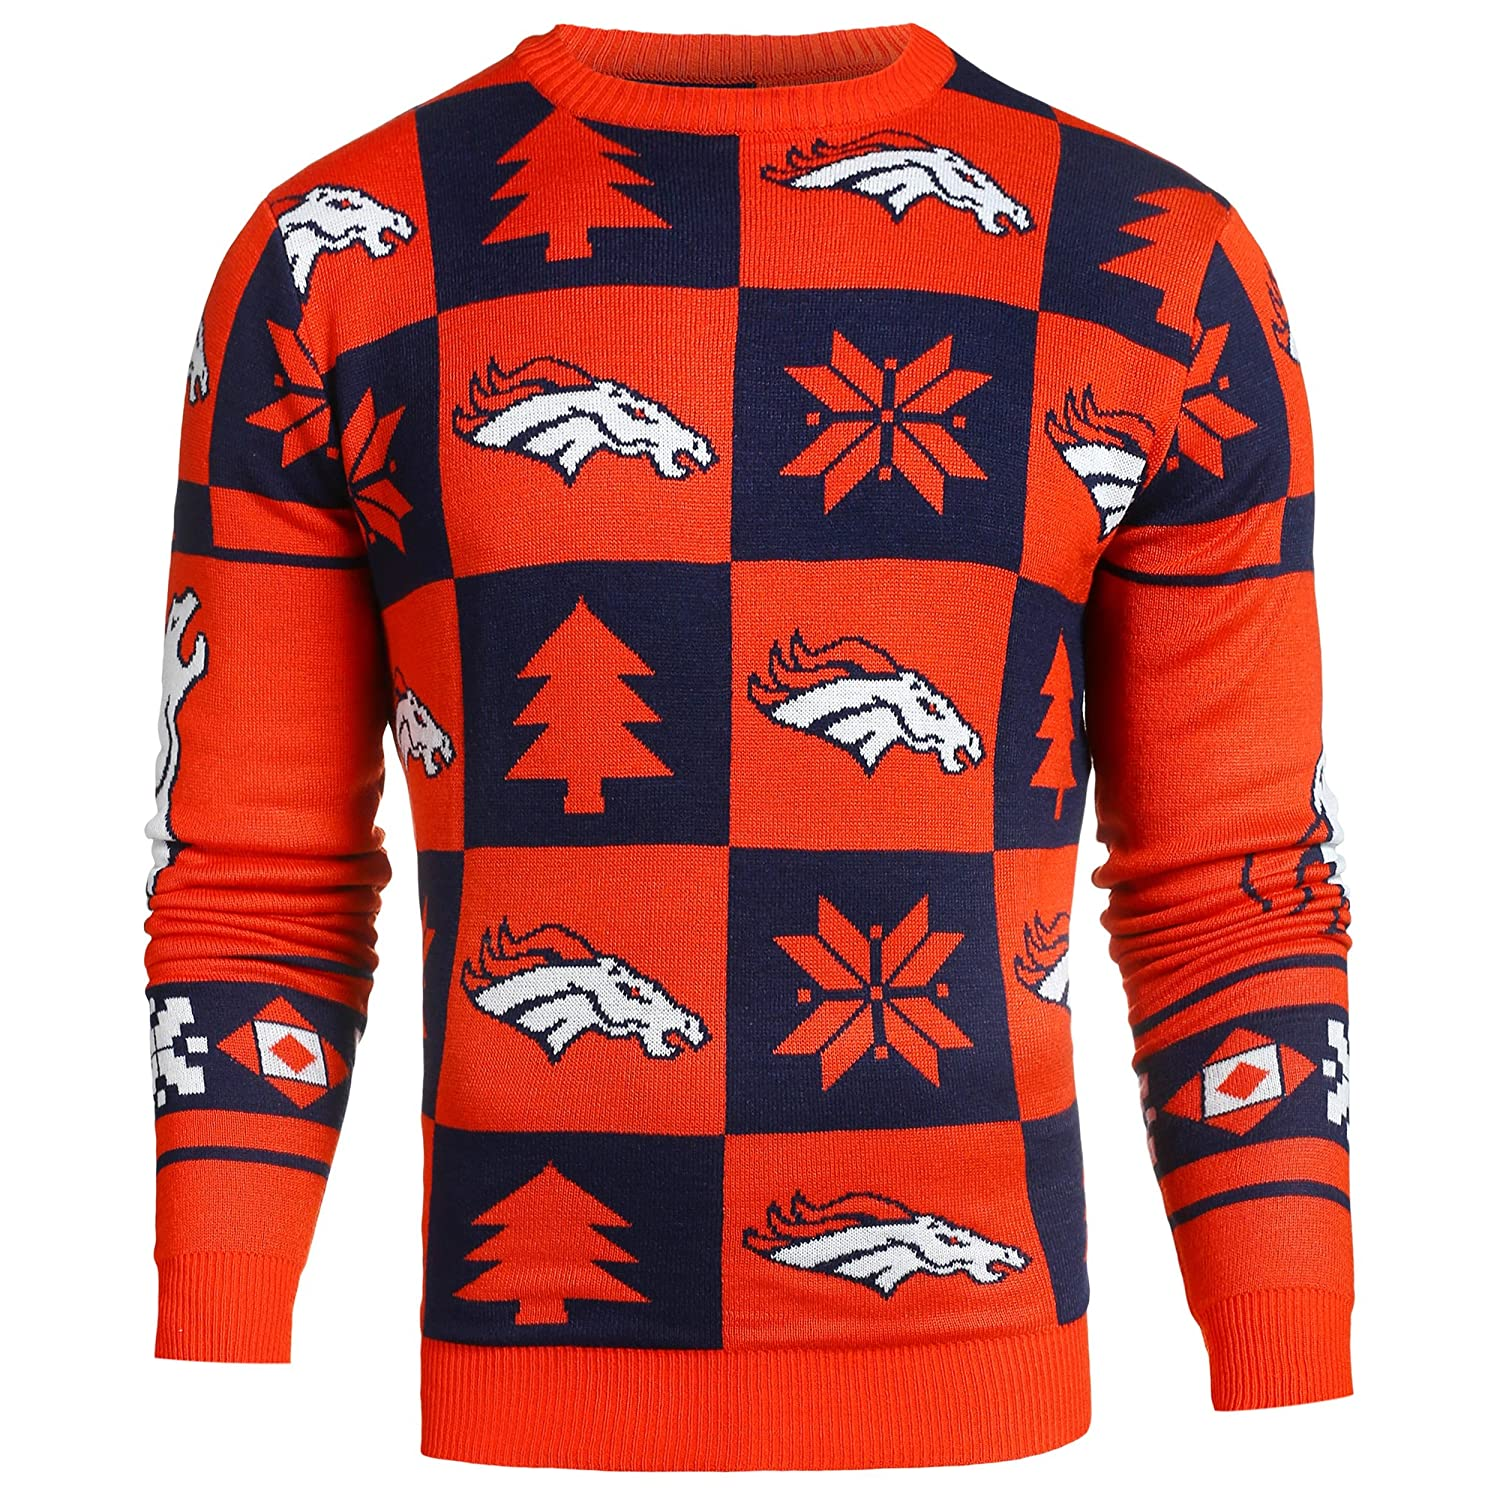 Denver Broncos 2016 Ugly Sweater